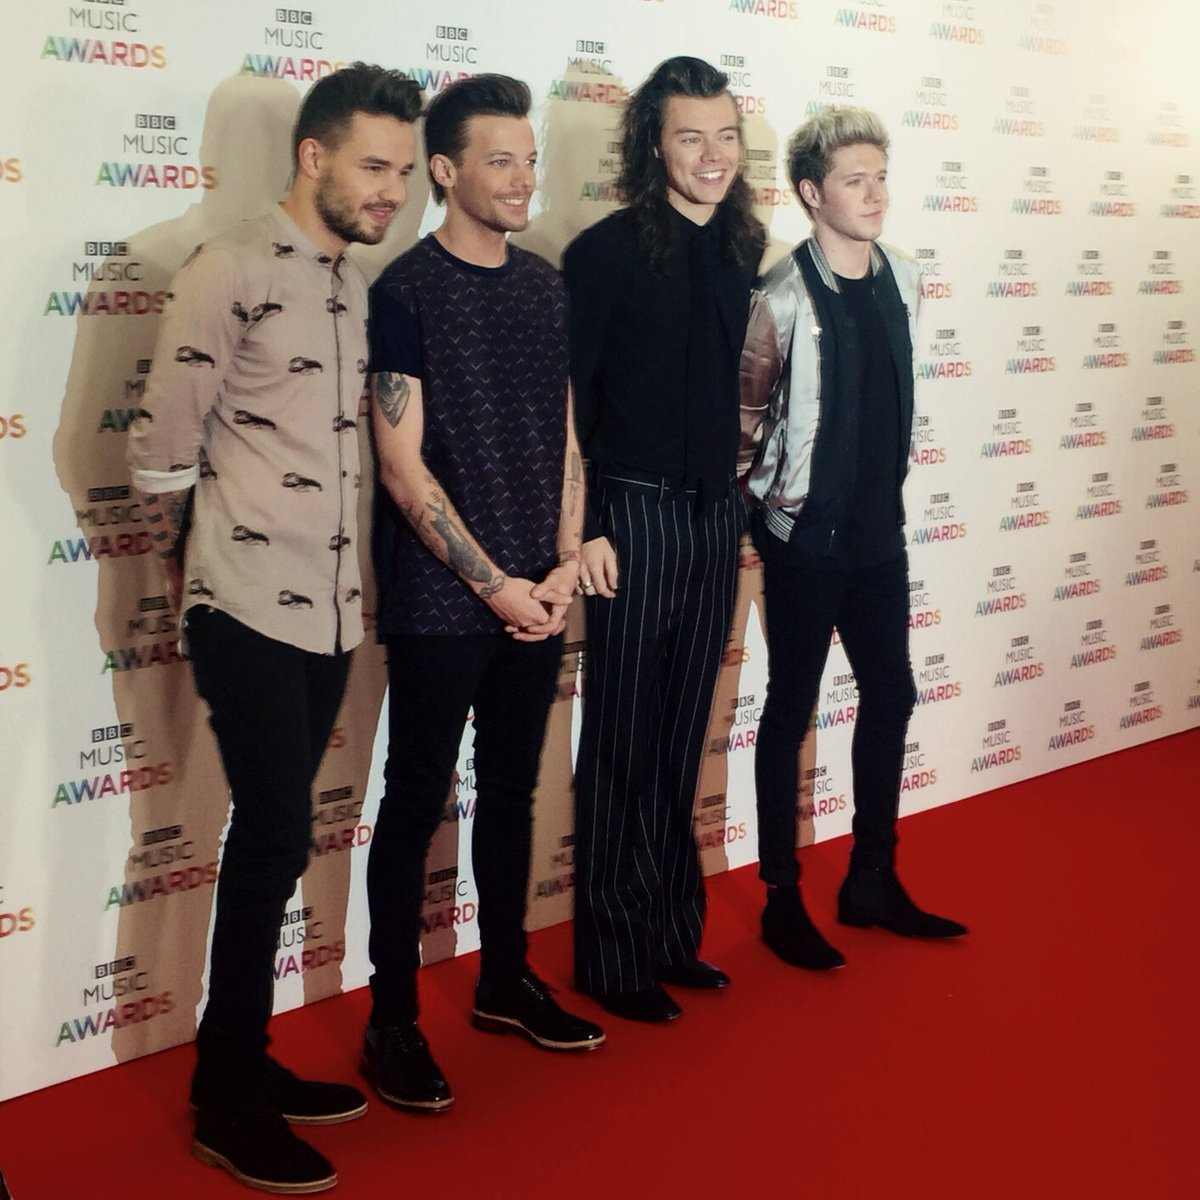 .@OneDirection arriving on the red carpet for the #BBCMusicAwards. Who's excited?